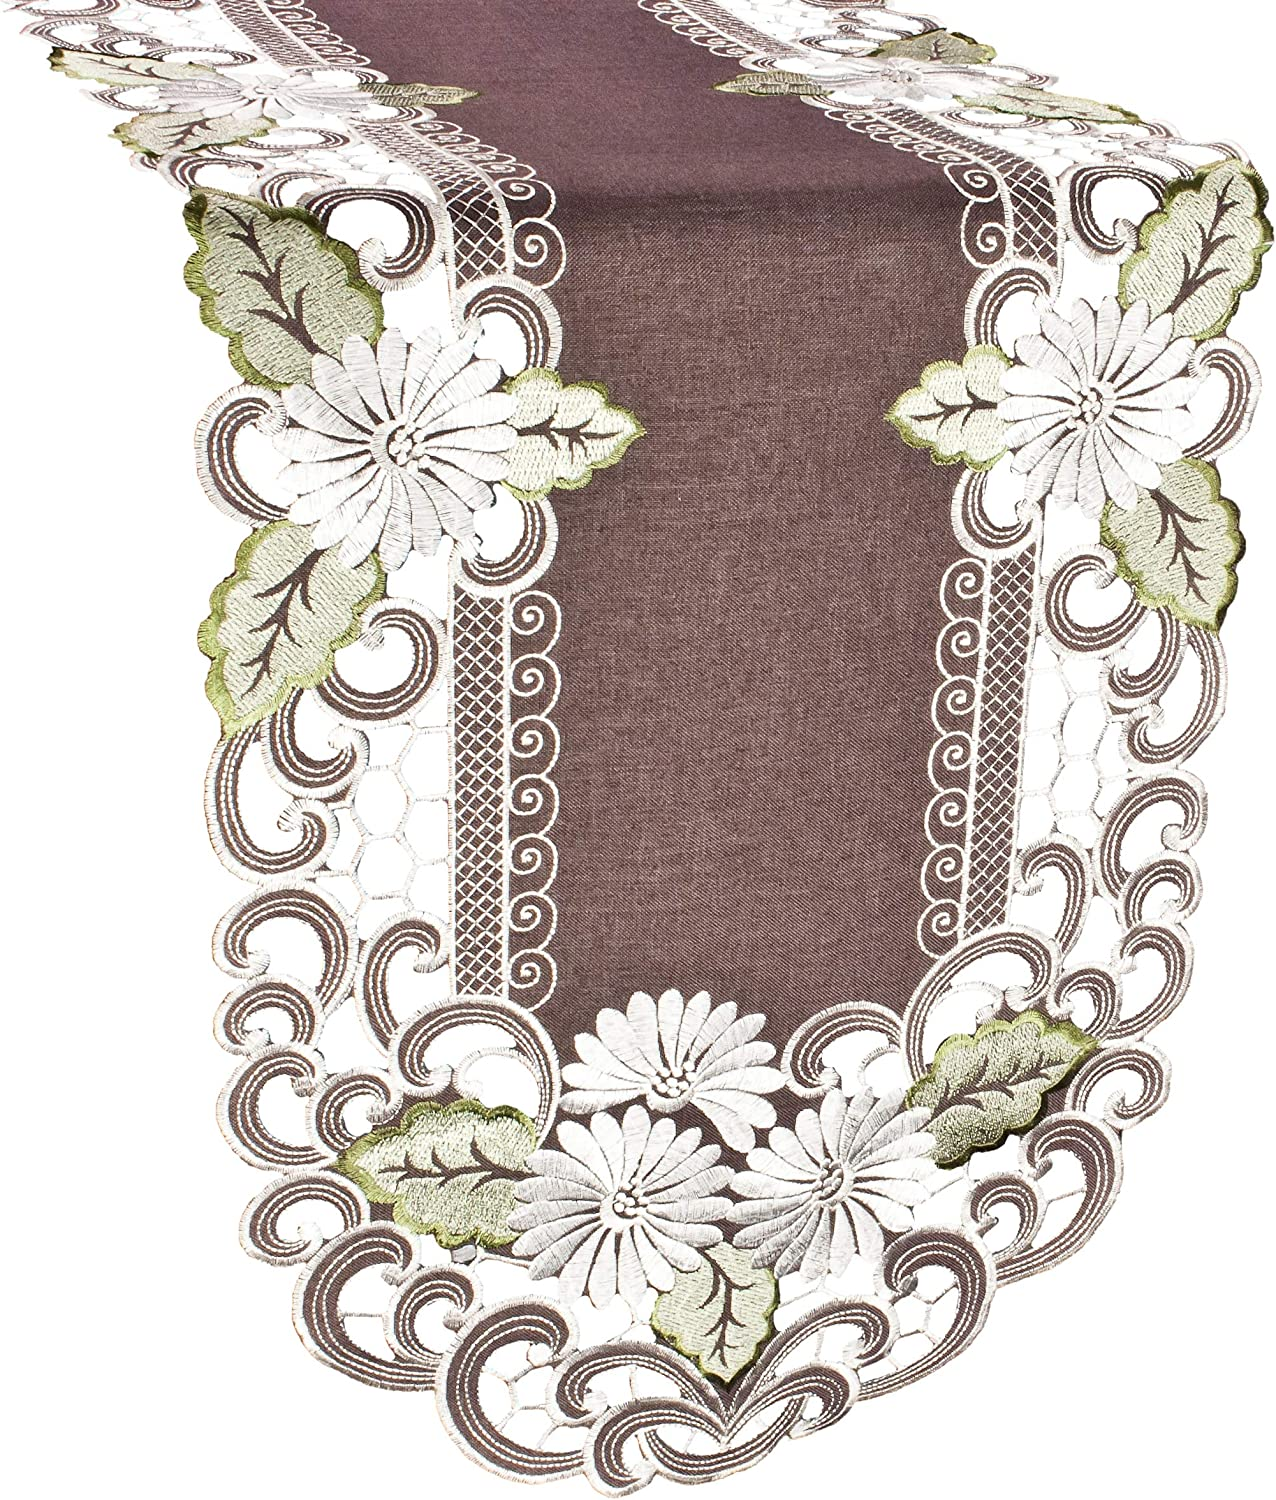 Linens, Art and Things Embroidered Table Runner with Daisy Flowers on Brown, 15 by 53 Inch, Machine Wash, Coffee Table Runner, Dresser Scarf, Doily